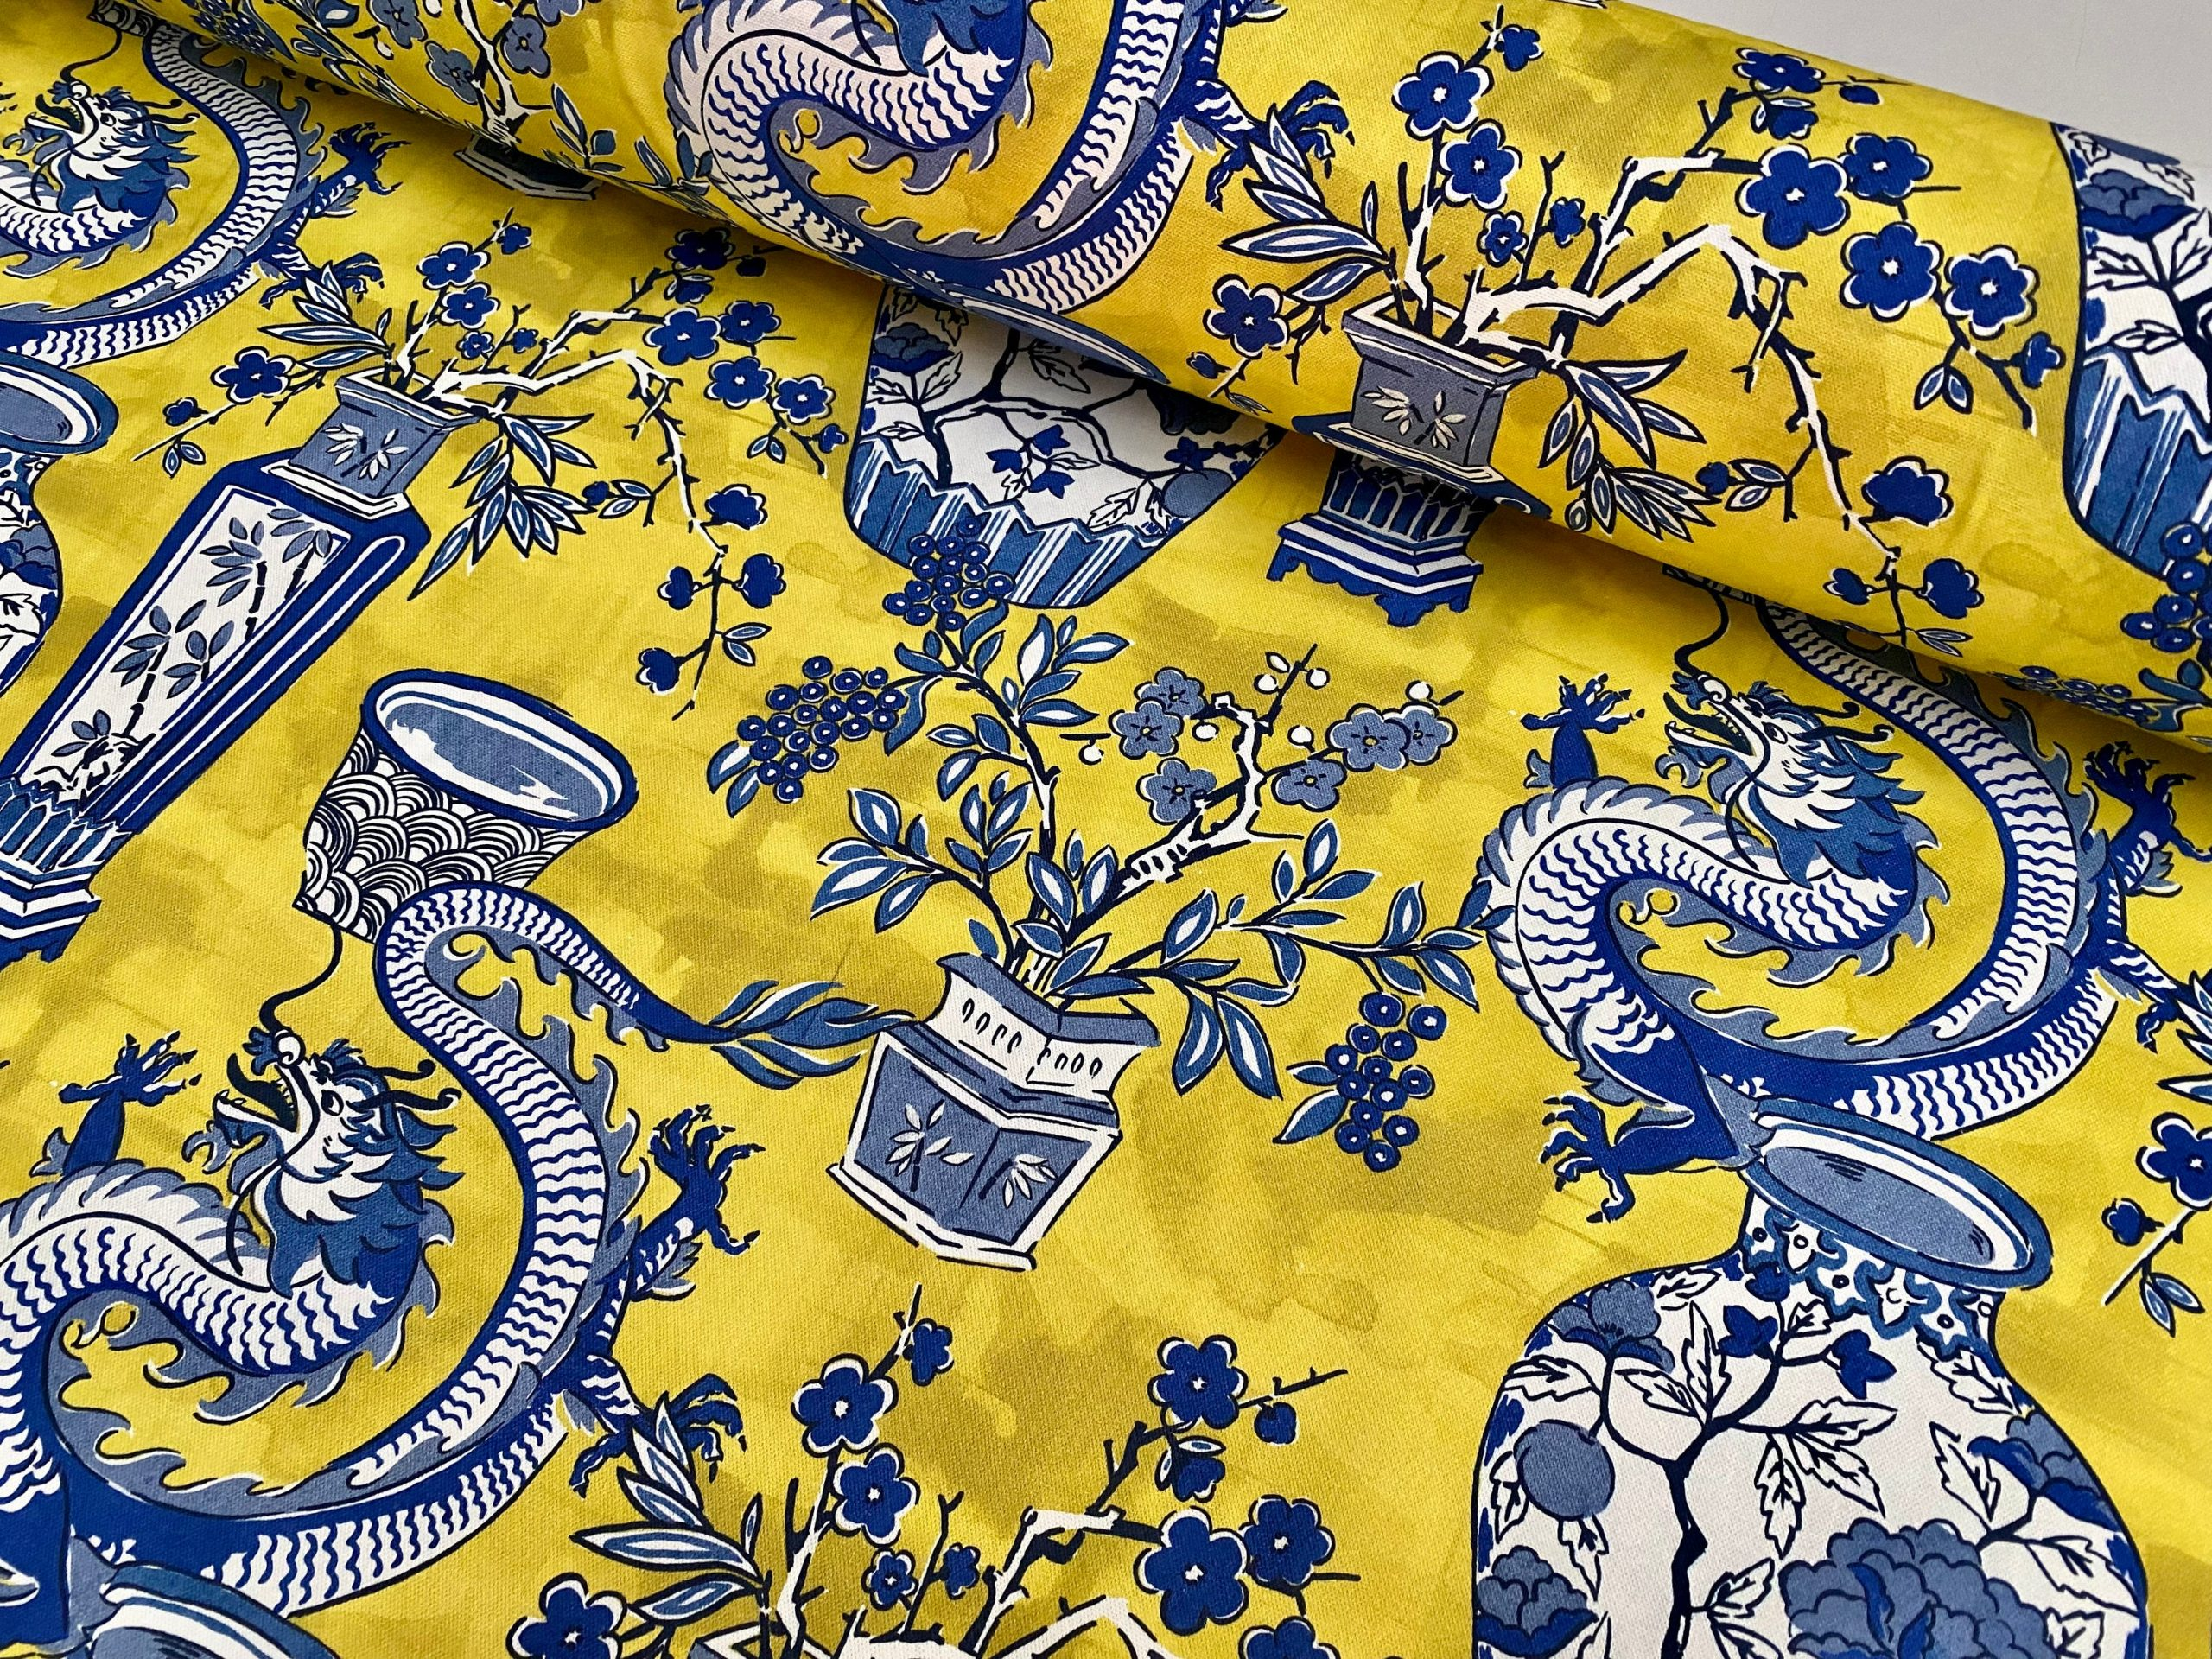 """BLUE Chinese Dragon Fabric Asian Porcelain Motif Material Home Decor Curtain Upholstery 140cm or 55"""" wide – Mustard & Blue"""